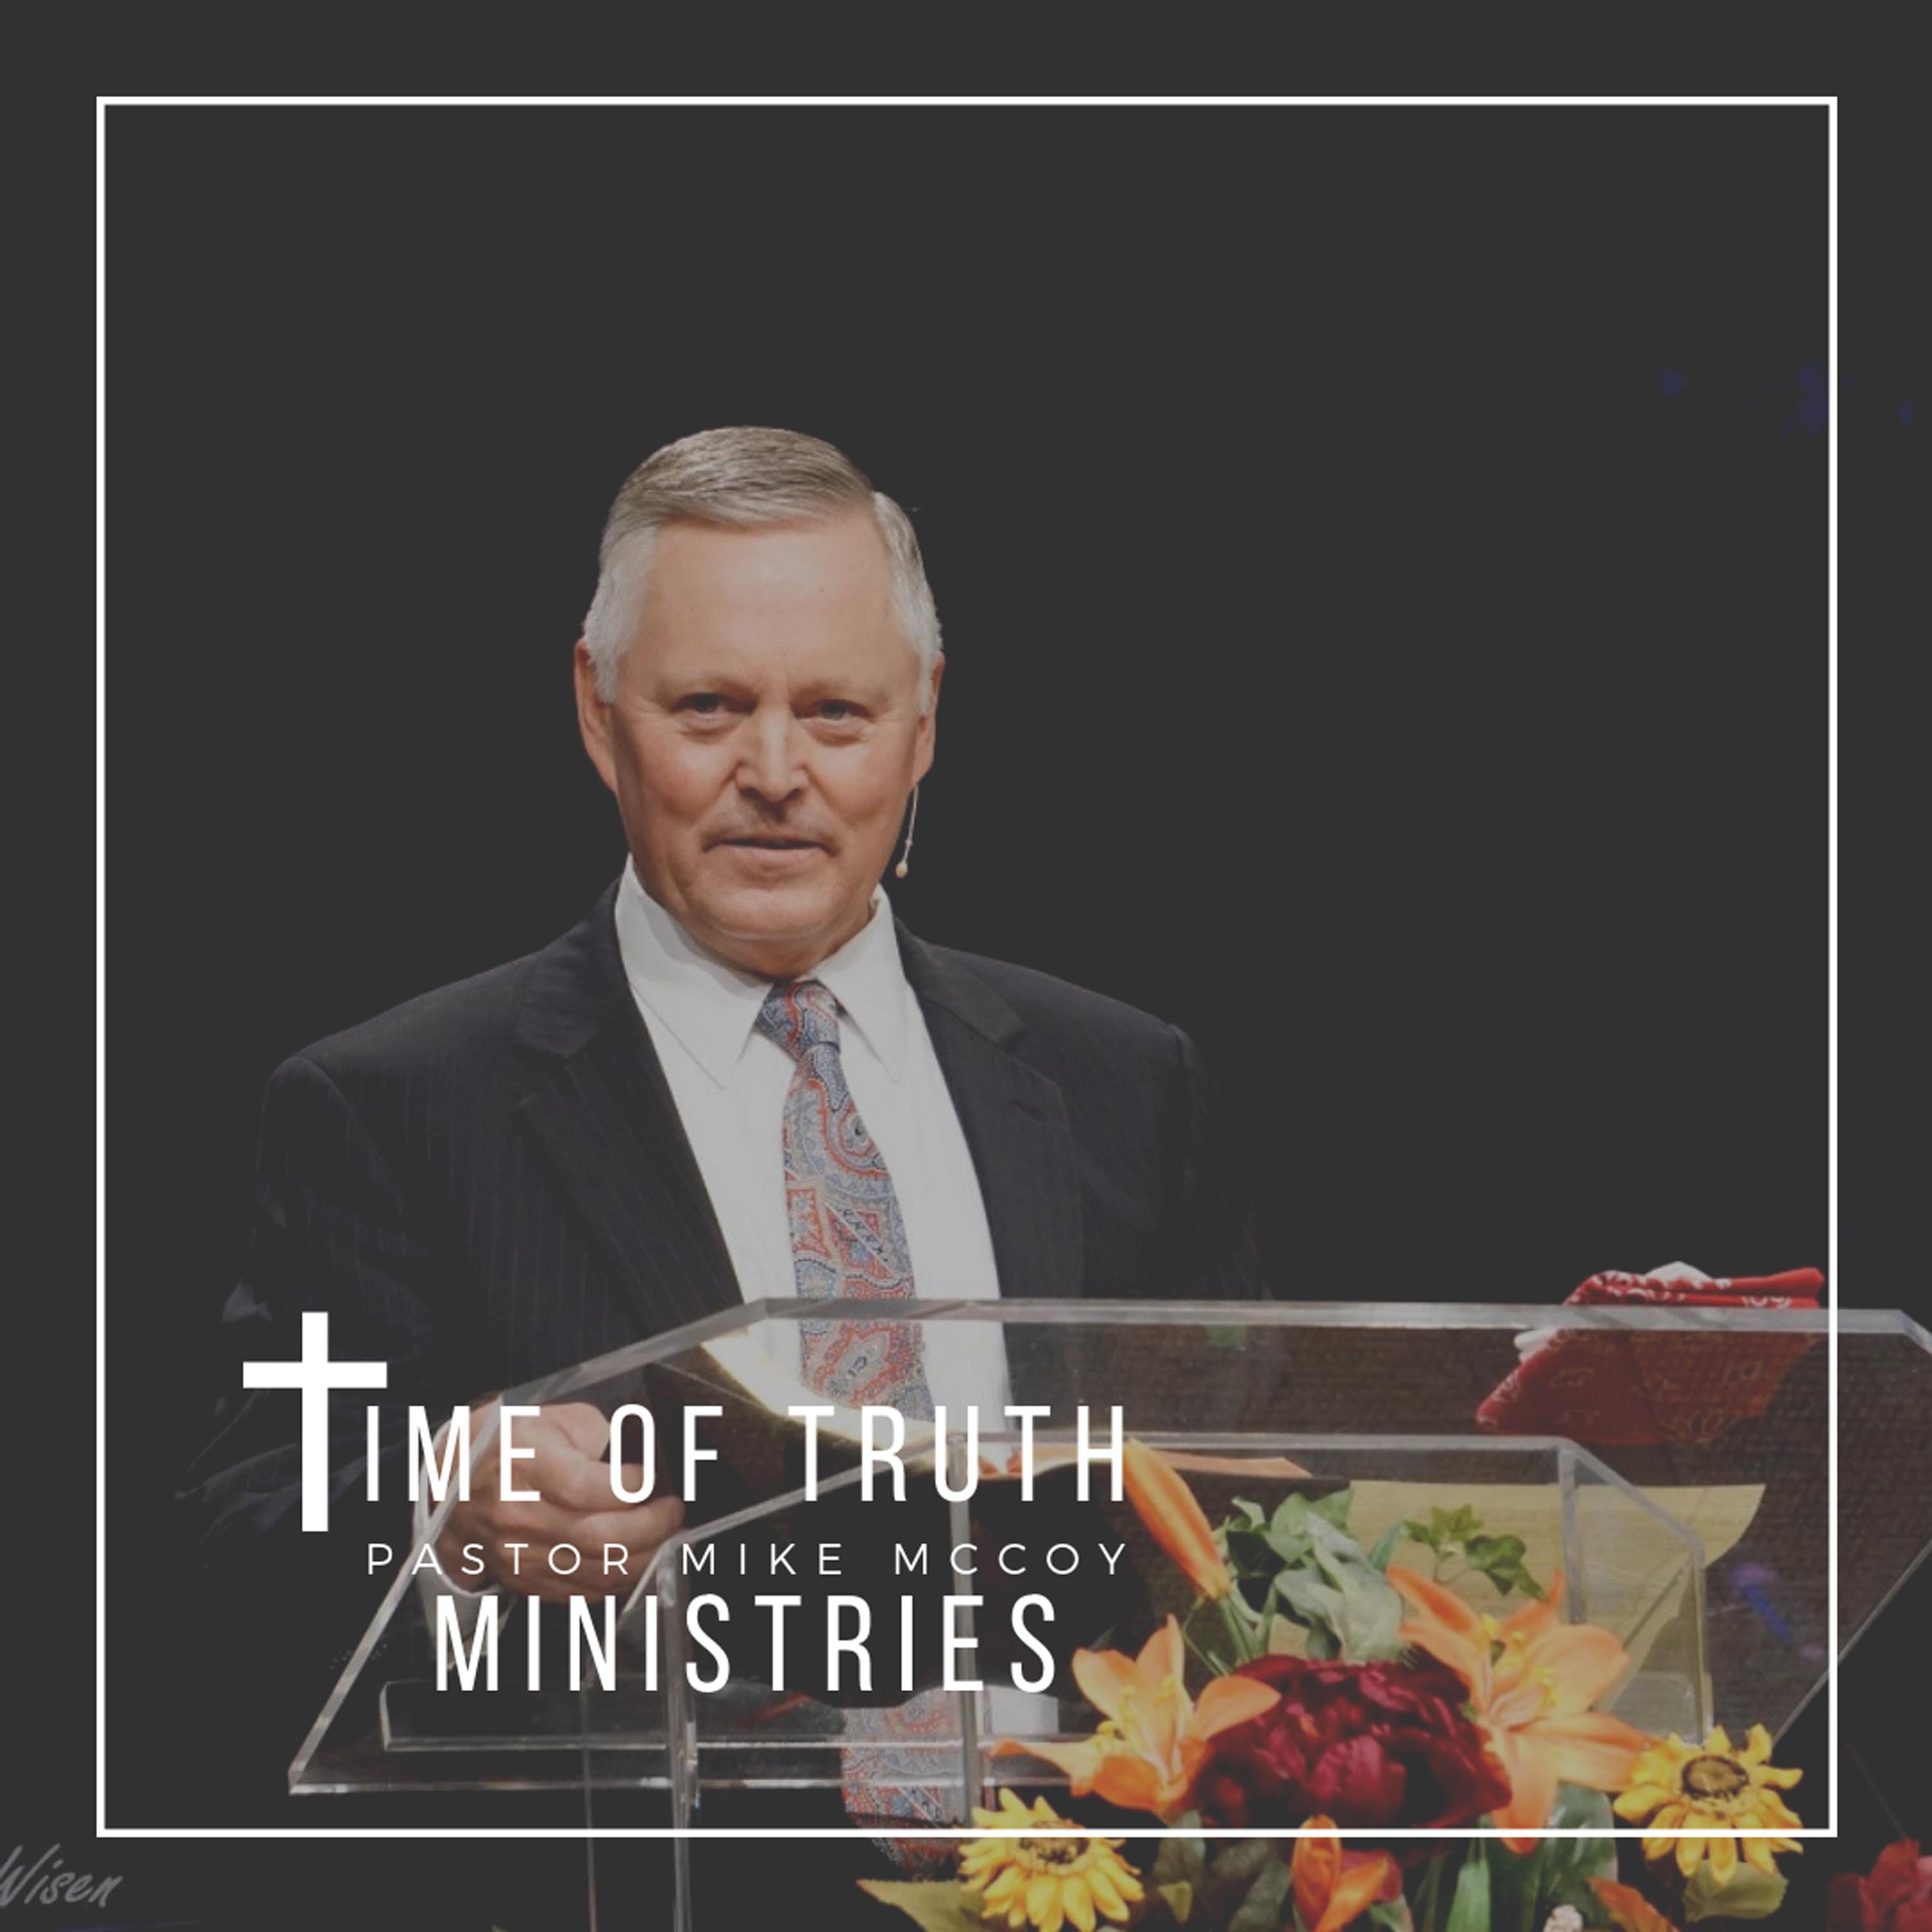 Time of Truth Ministries